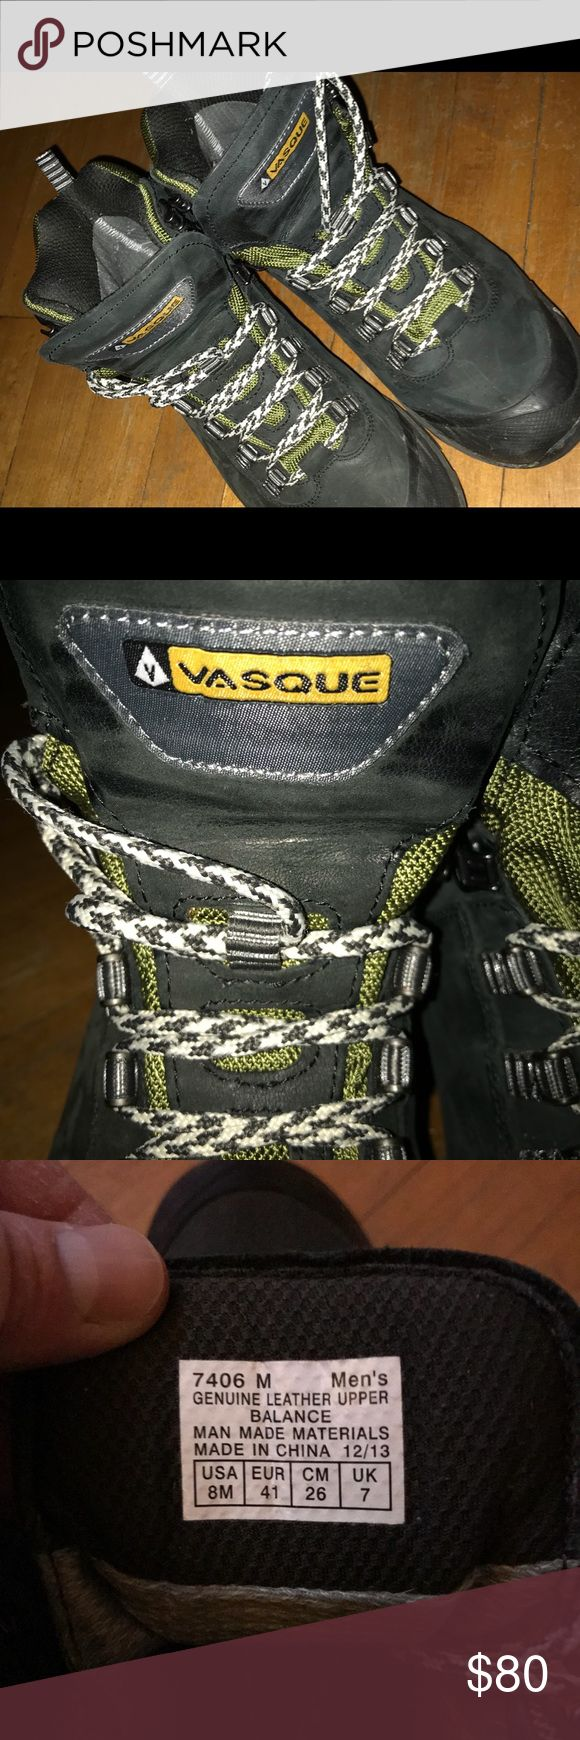 Vasque Hiking Boots Like new condition, worn only once. Beluga blue and green. Vasque Shoes Boots